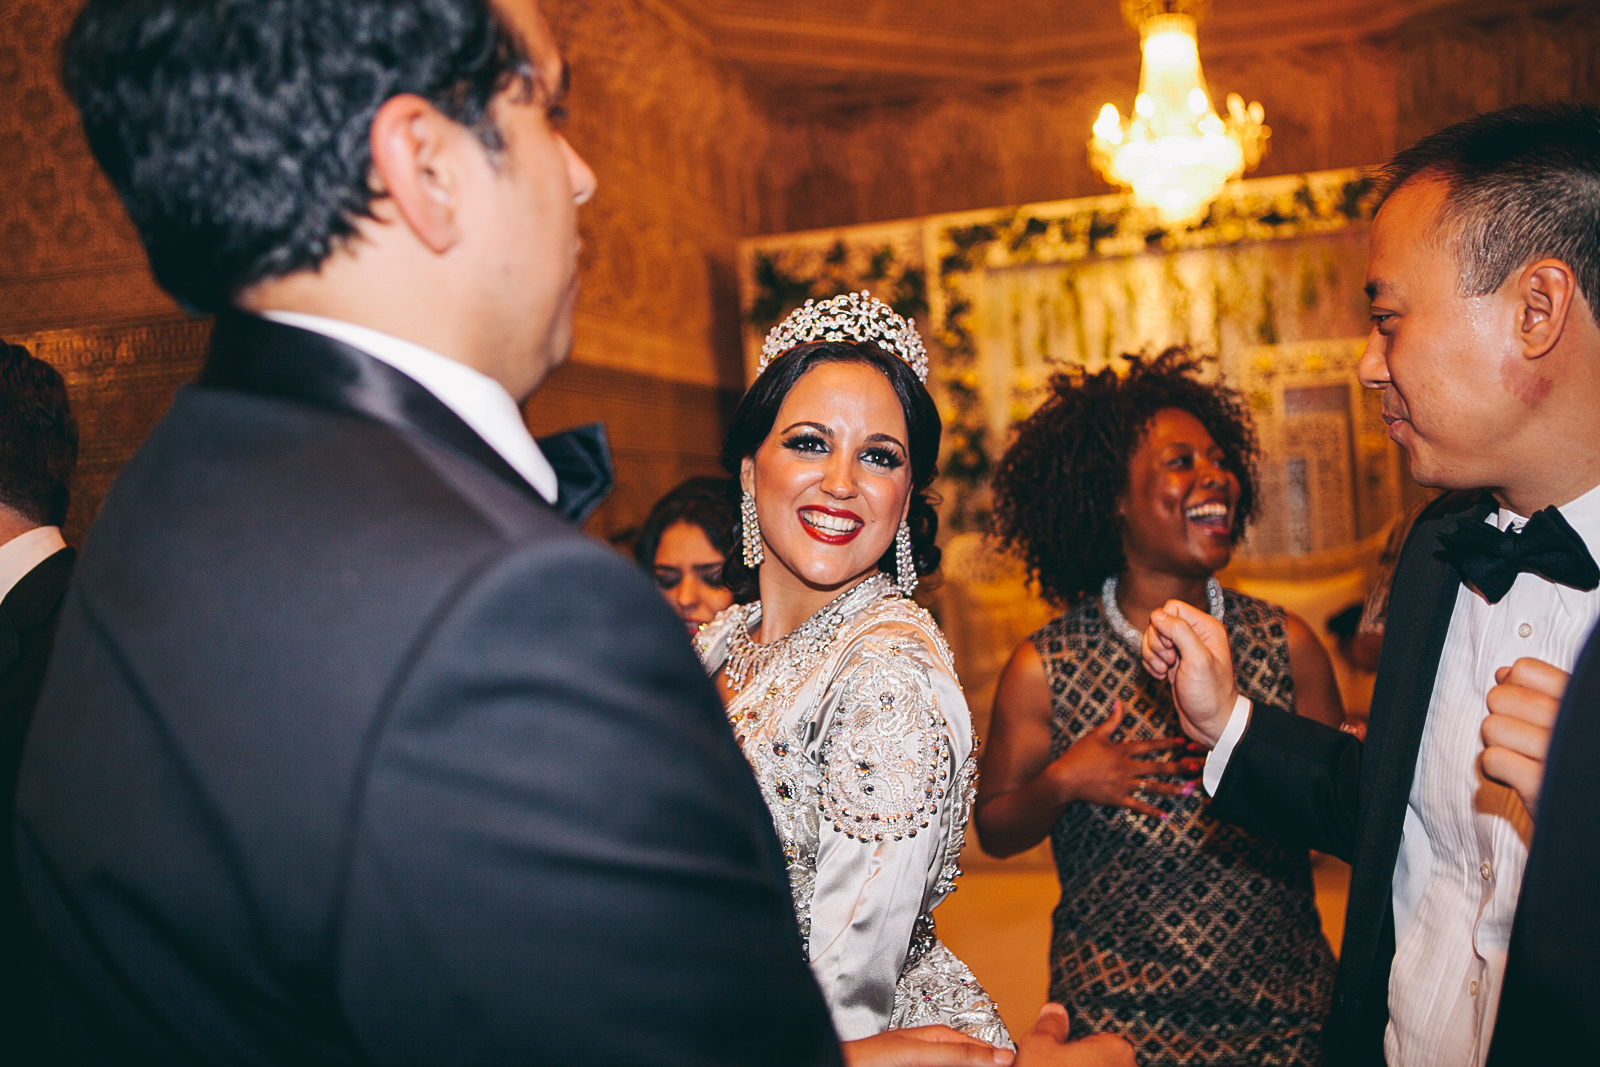 traditional_moroccan_wedding_photographry_casablanca_morocco_houda_vivek_ebony_siovhan_bokeh_photography_100.jpg